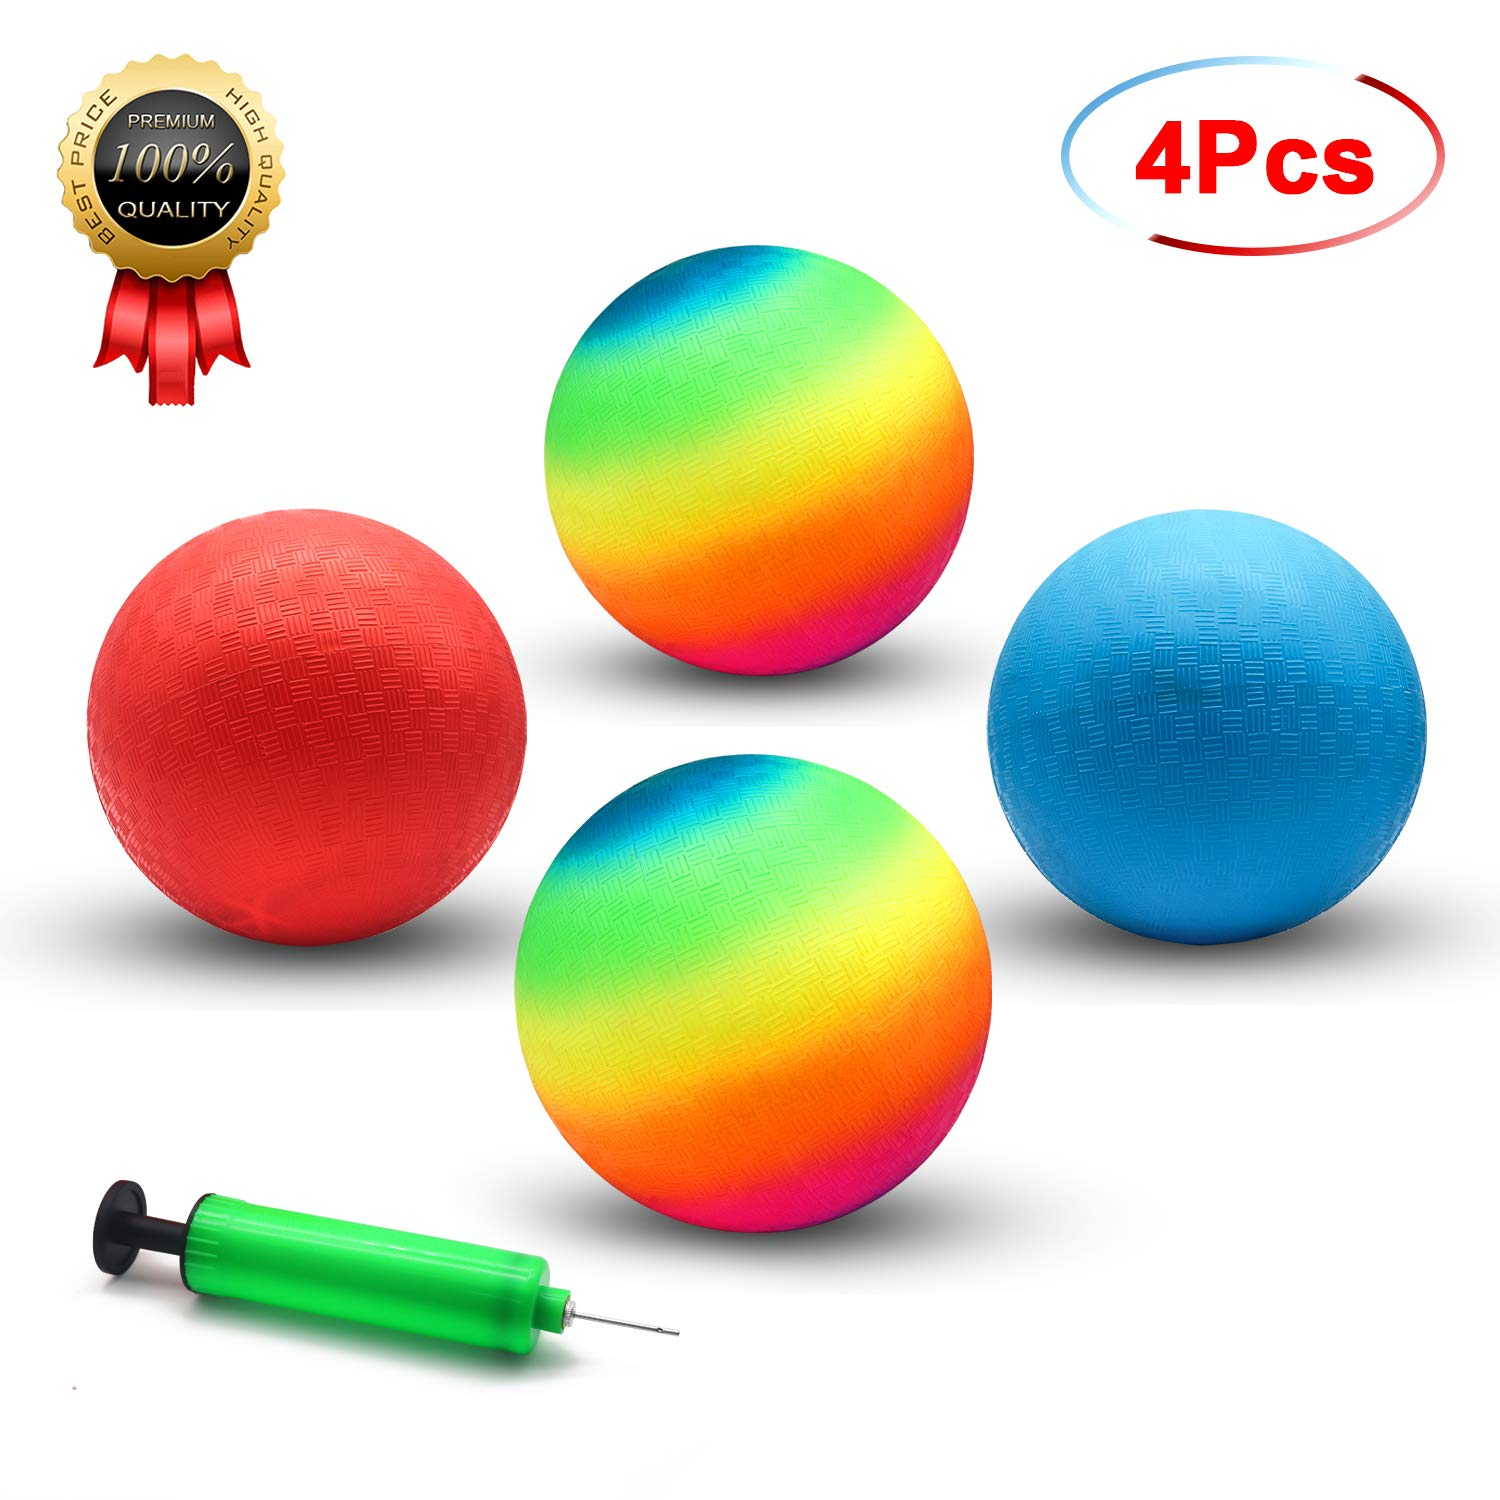 Playground Balls, 8.5 Inch Dodgeball Kickball for Kids Adults Outdoor Four Square Handball Game with Hand Pump (4 Pack) by BeeTwo